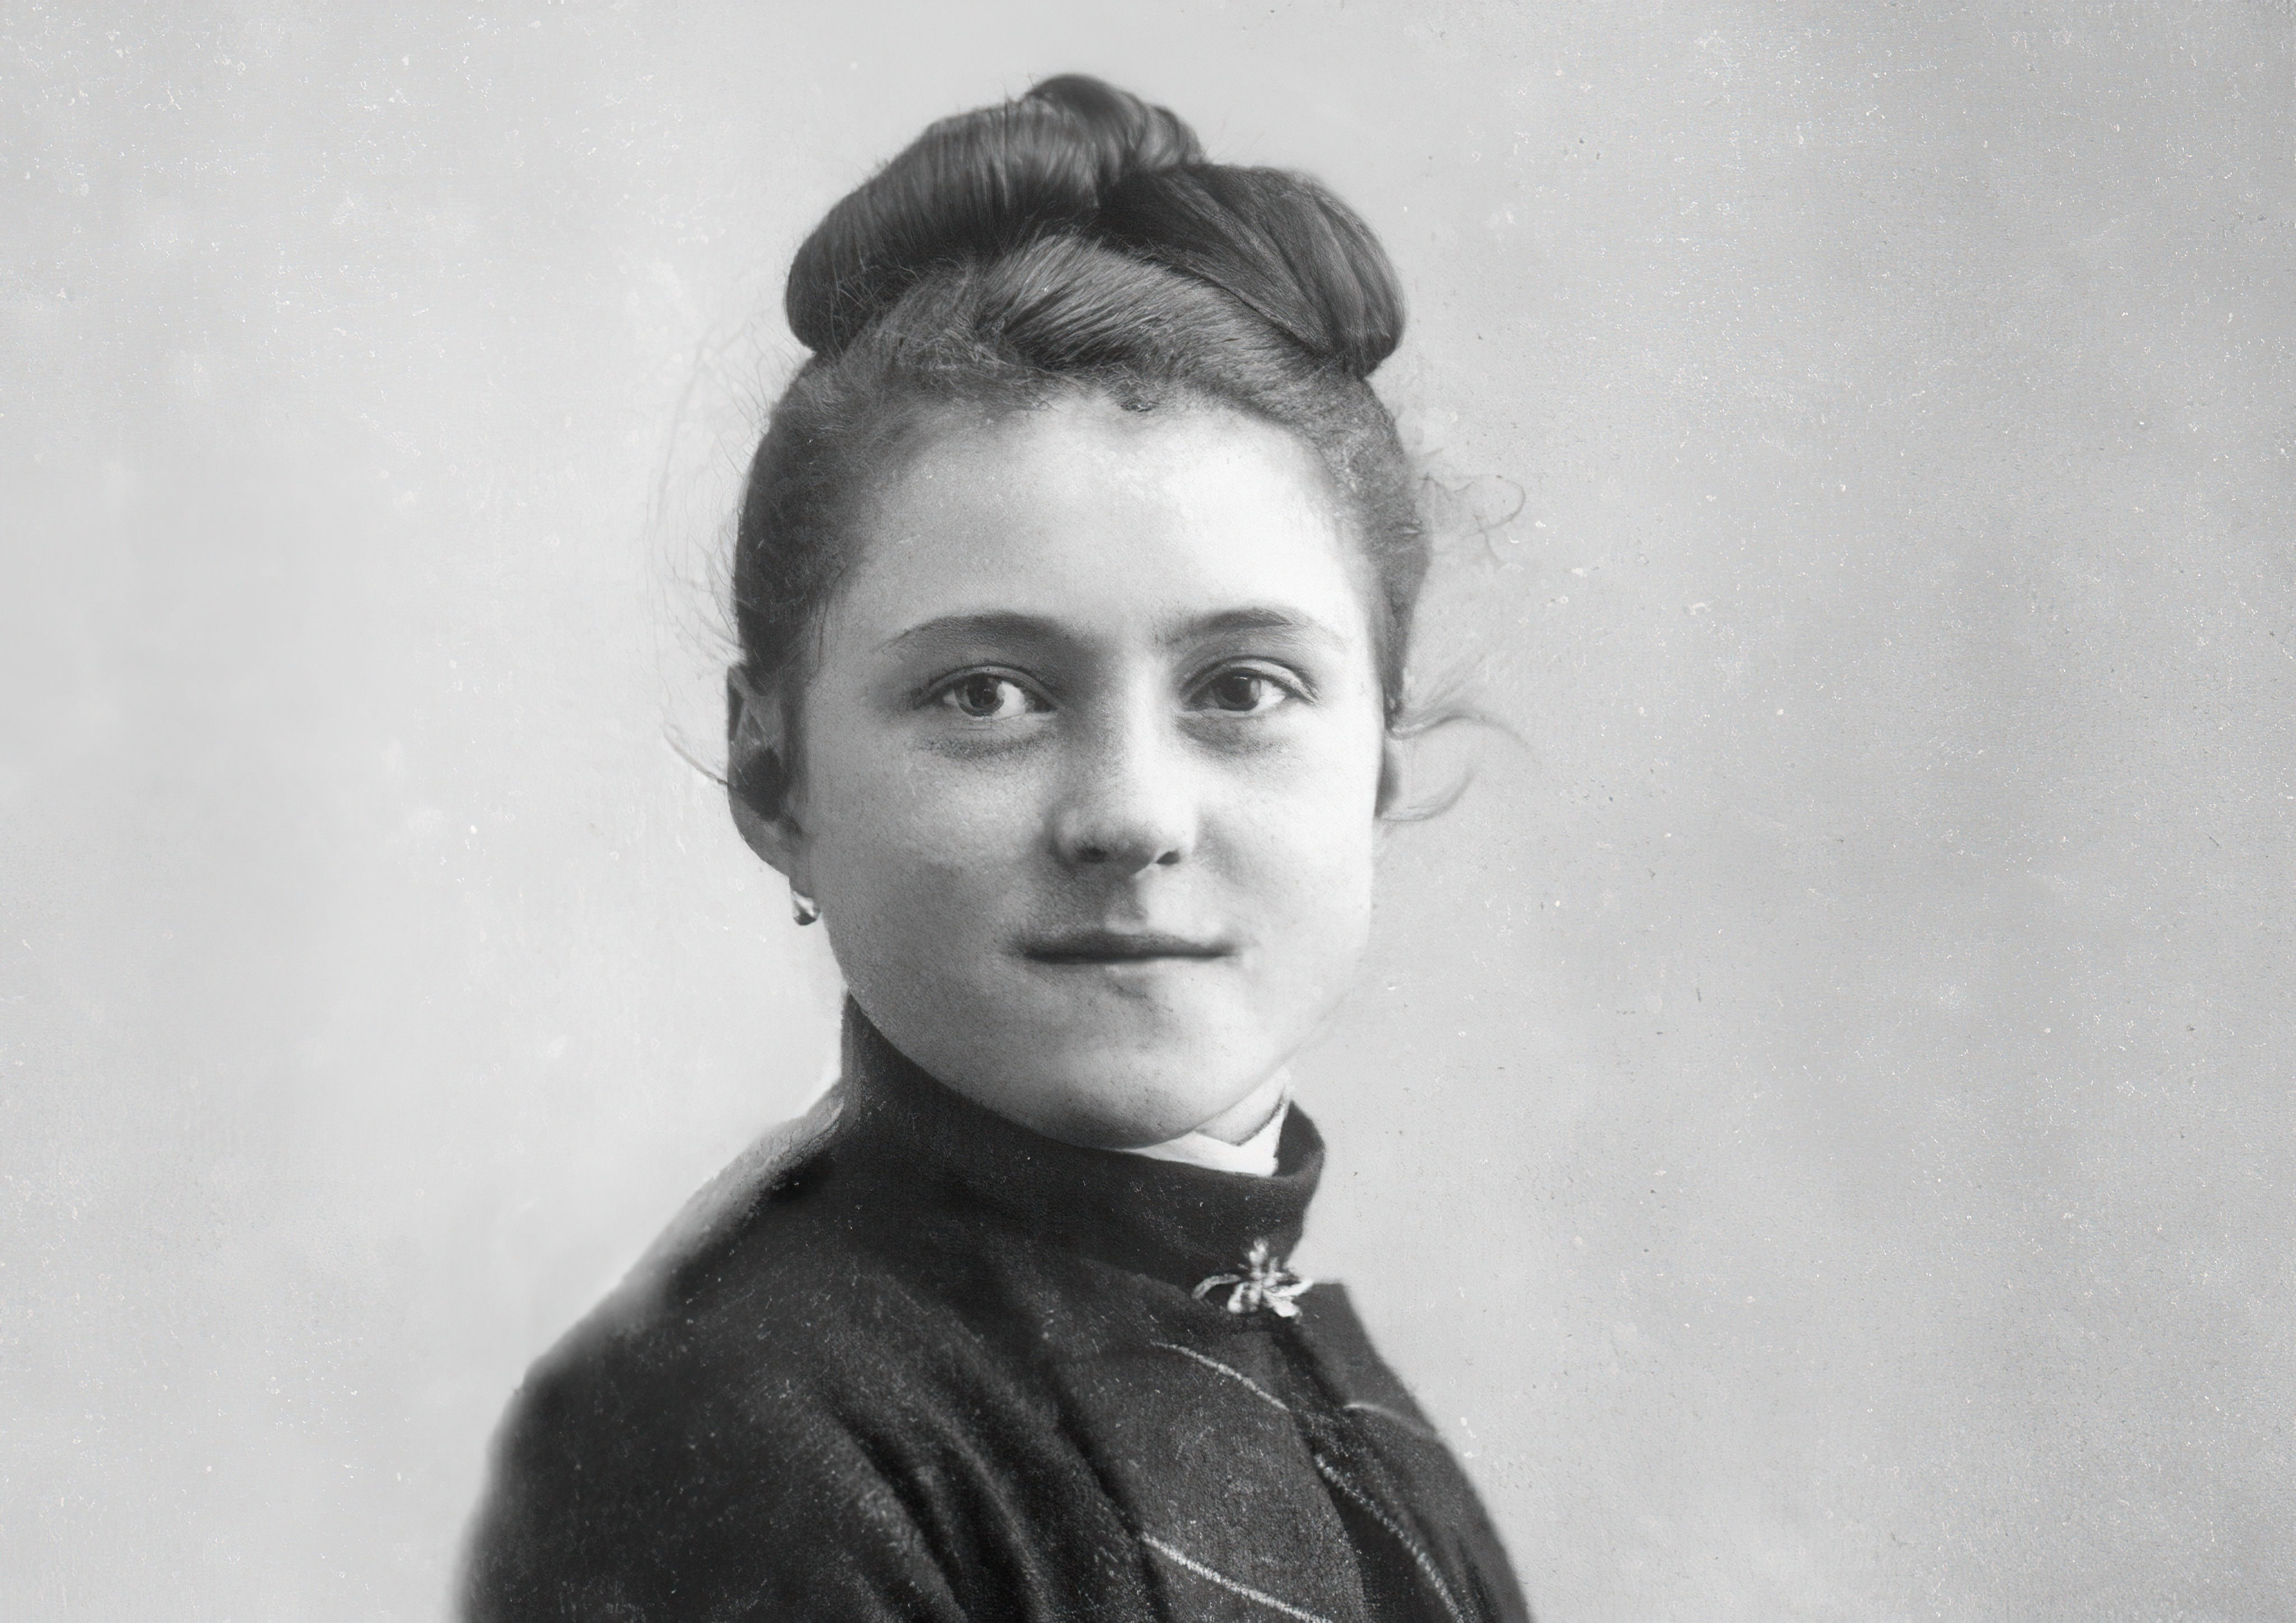 St. Thérèse of Lisieux at 15 years old